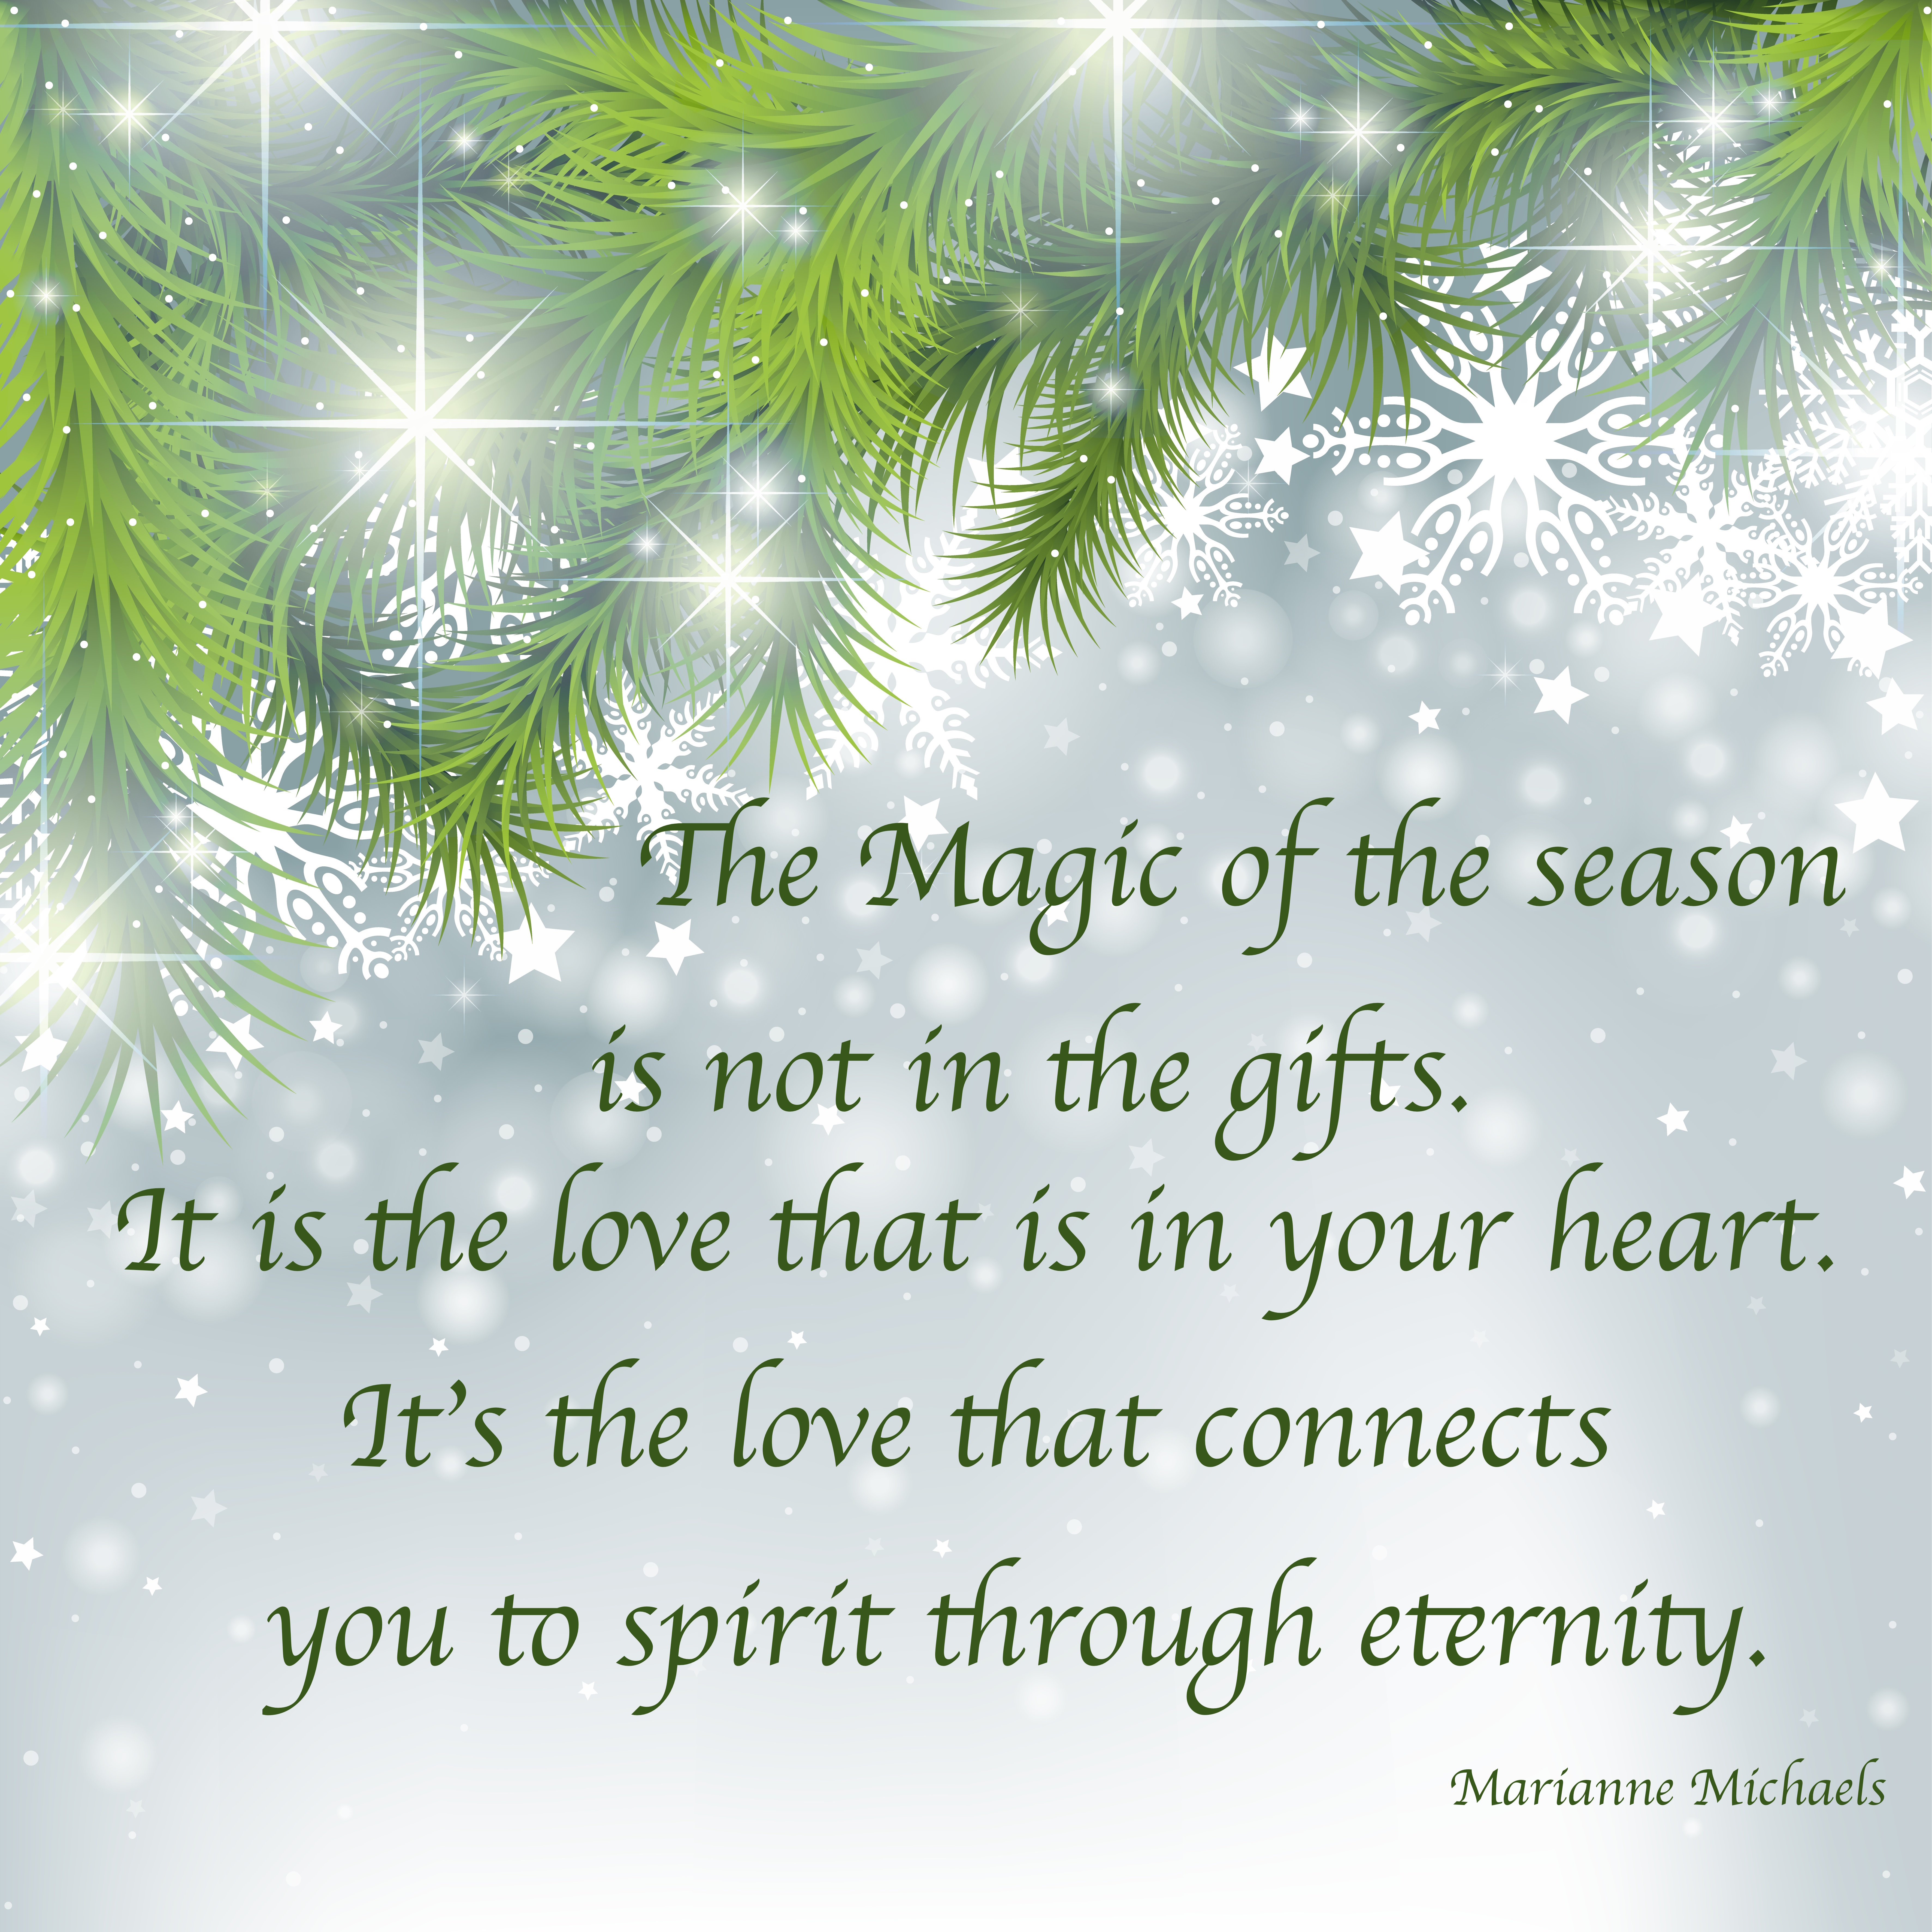 Holidays Can Be Magical Marianne Michaels